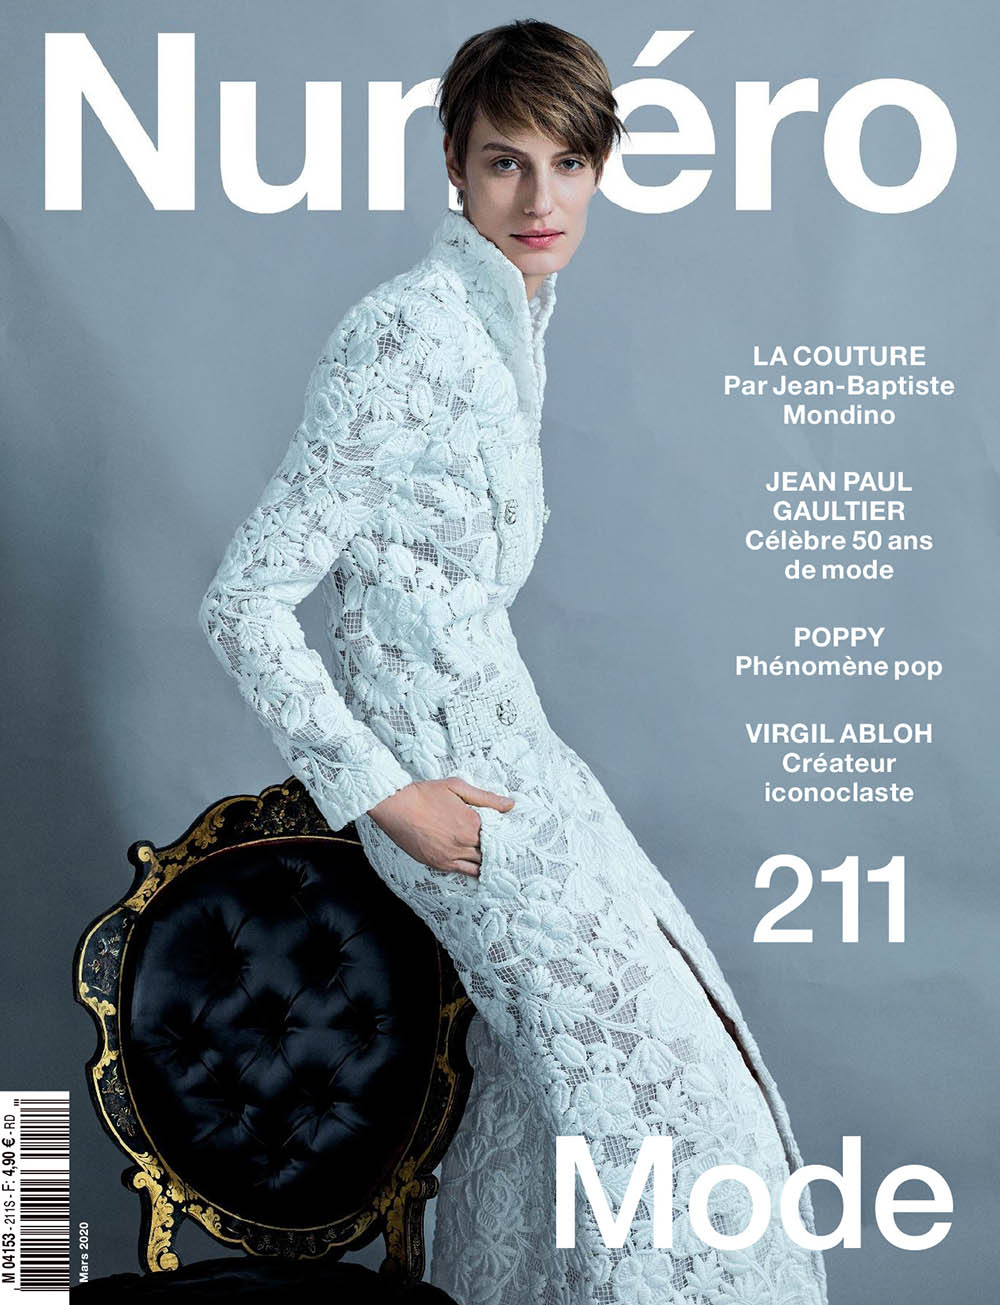 Veronika Kunz covers Numéro March 2020 by Jean-Baptiste Mondino